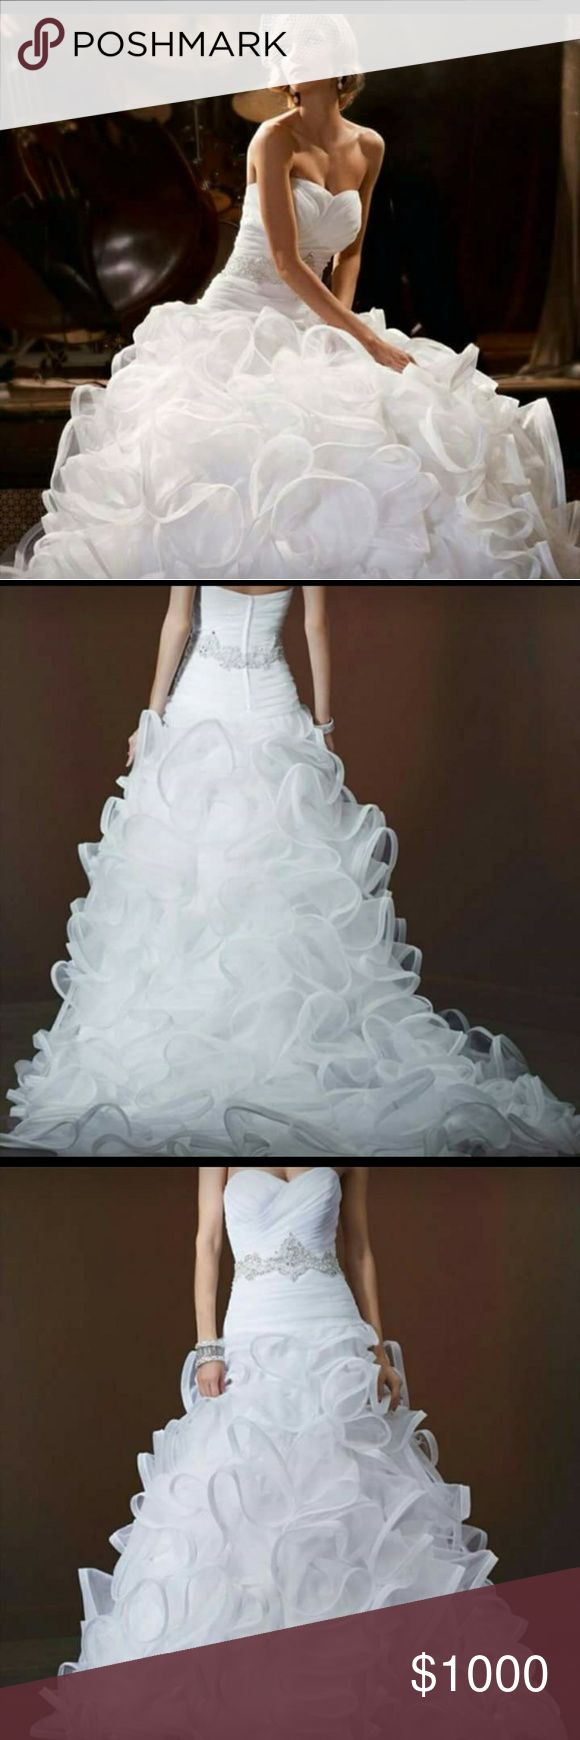 Galina Signature Wedding Gown White with organza. Beautiful and unique dress in excellent condition. Galina Signature Dresses Wedding